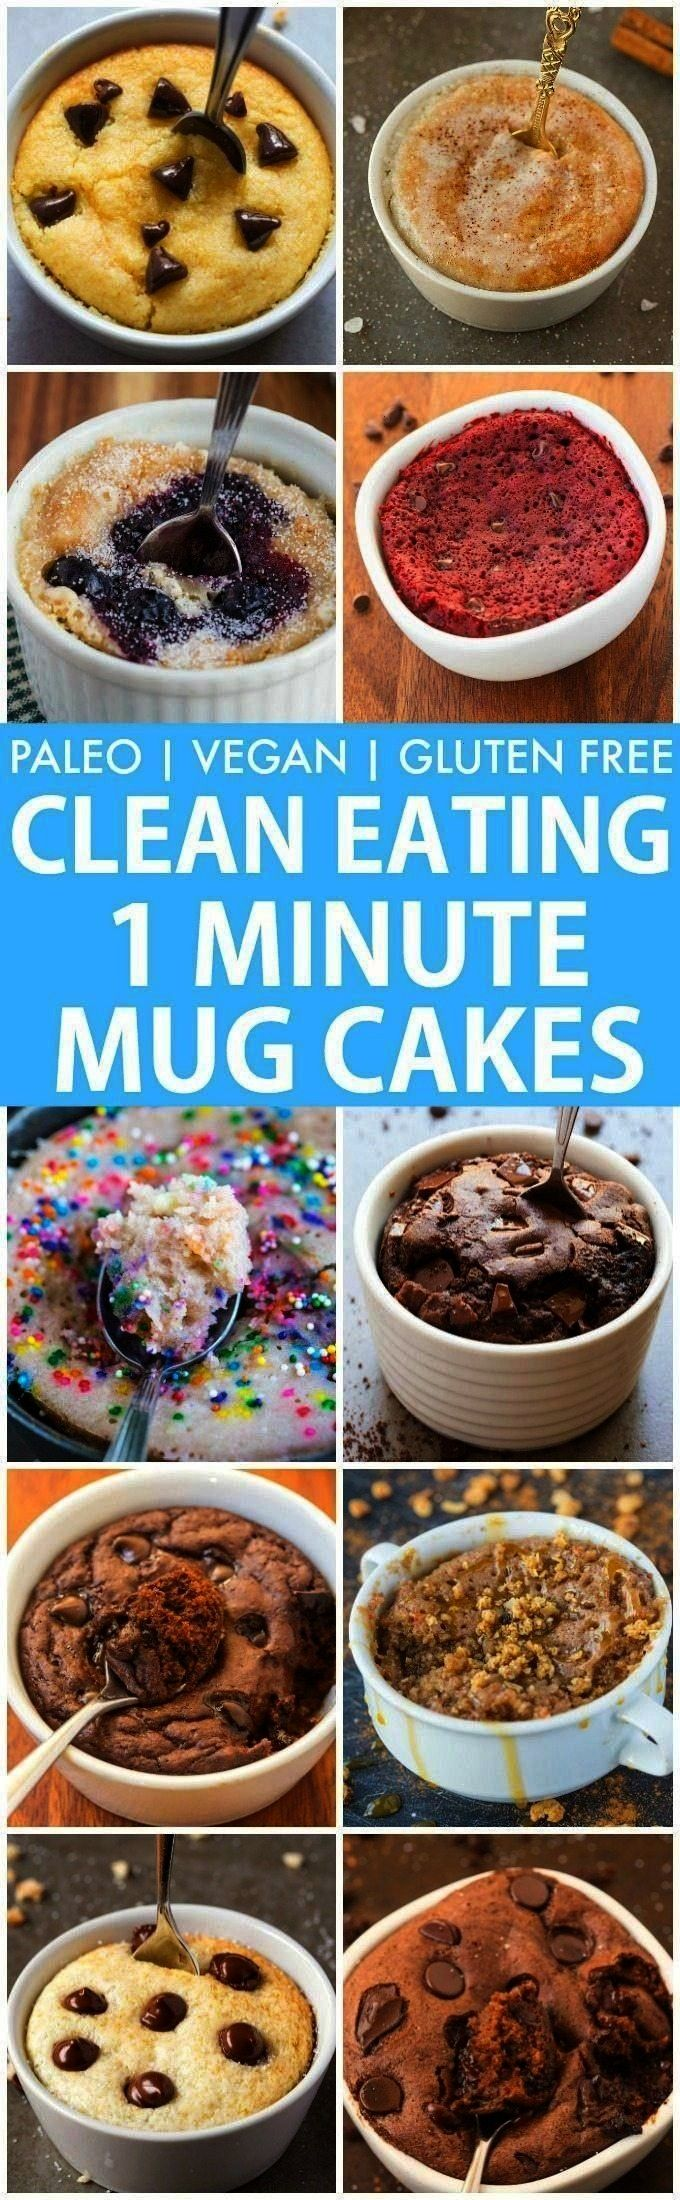 1 Minute Mug Cakes, Brownies and Muffins (V, GF, Paleo)- De... Clean Eating Healthy 1 Minute Mug Ca